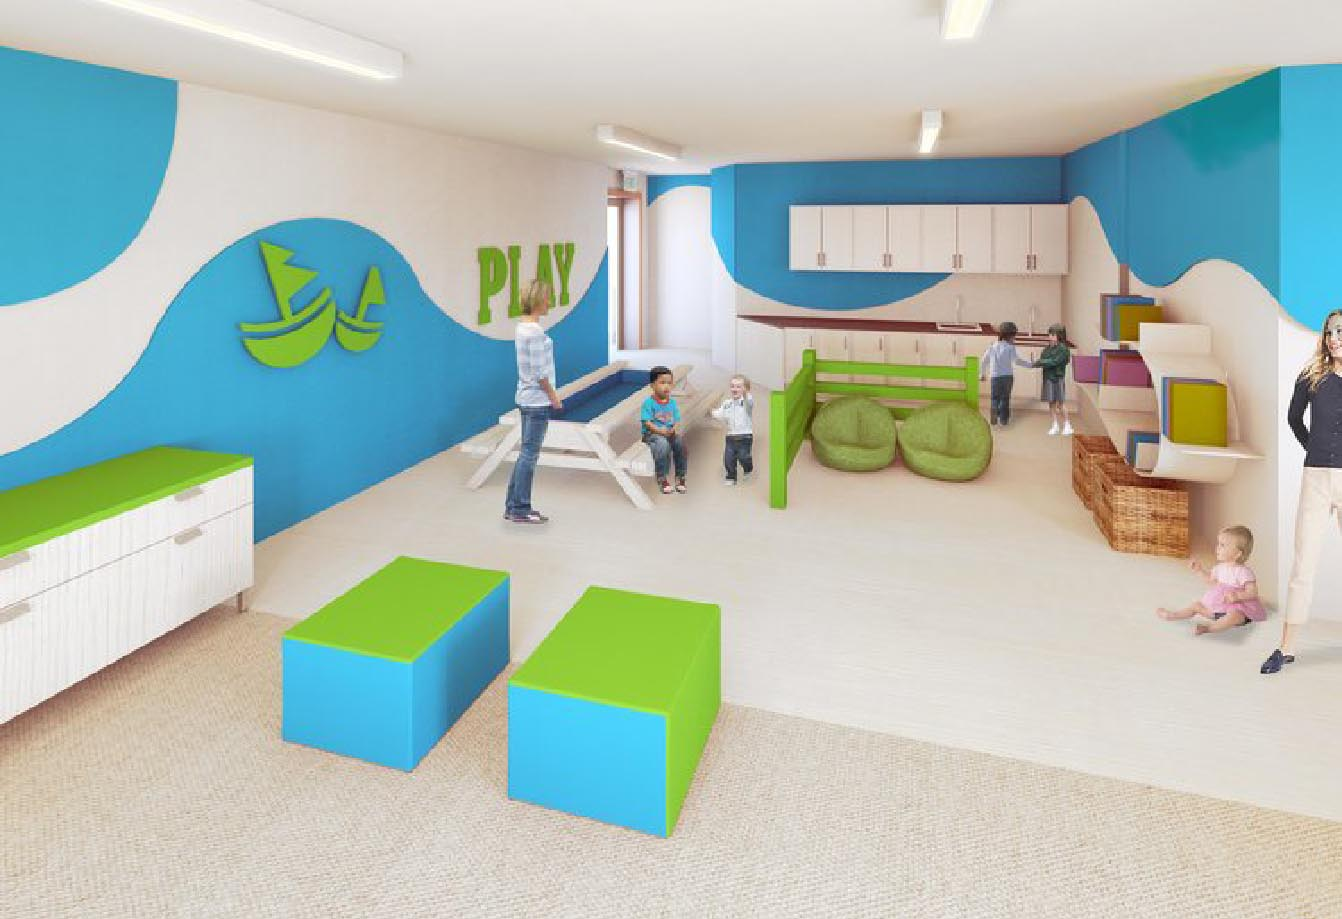 Greenapple Humbercrest Kids Cpartners Architects